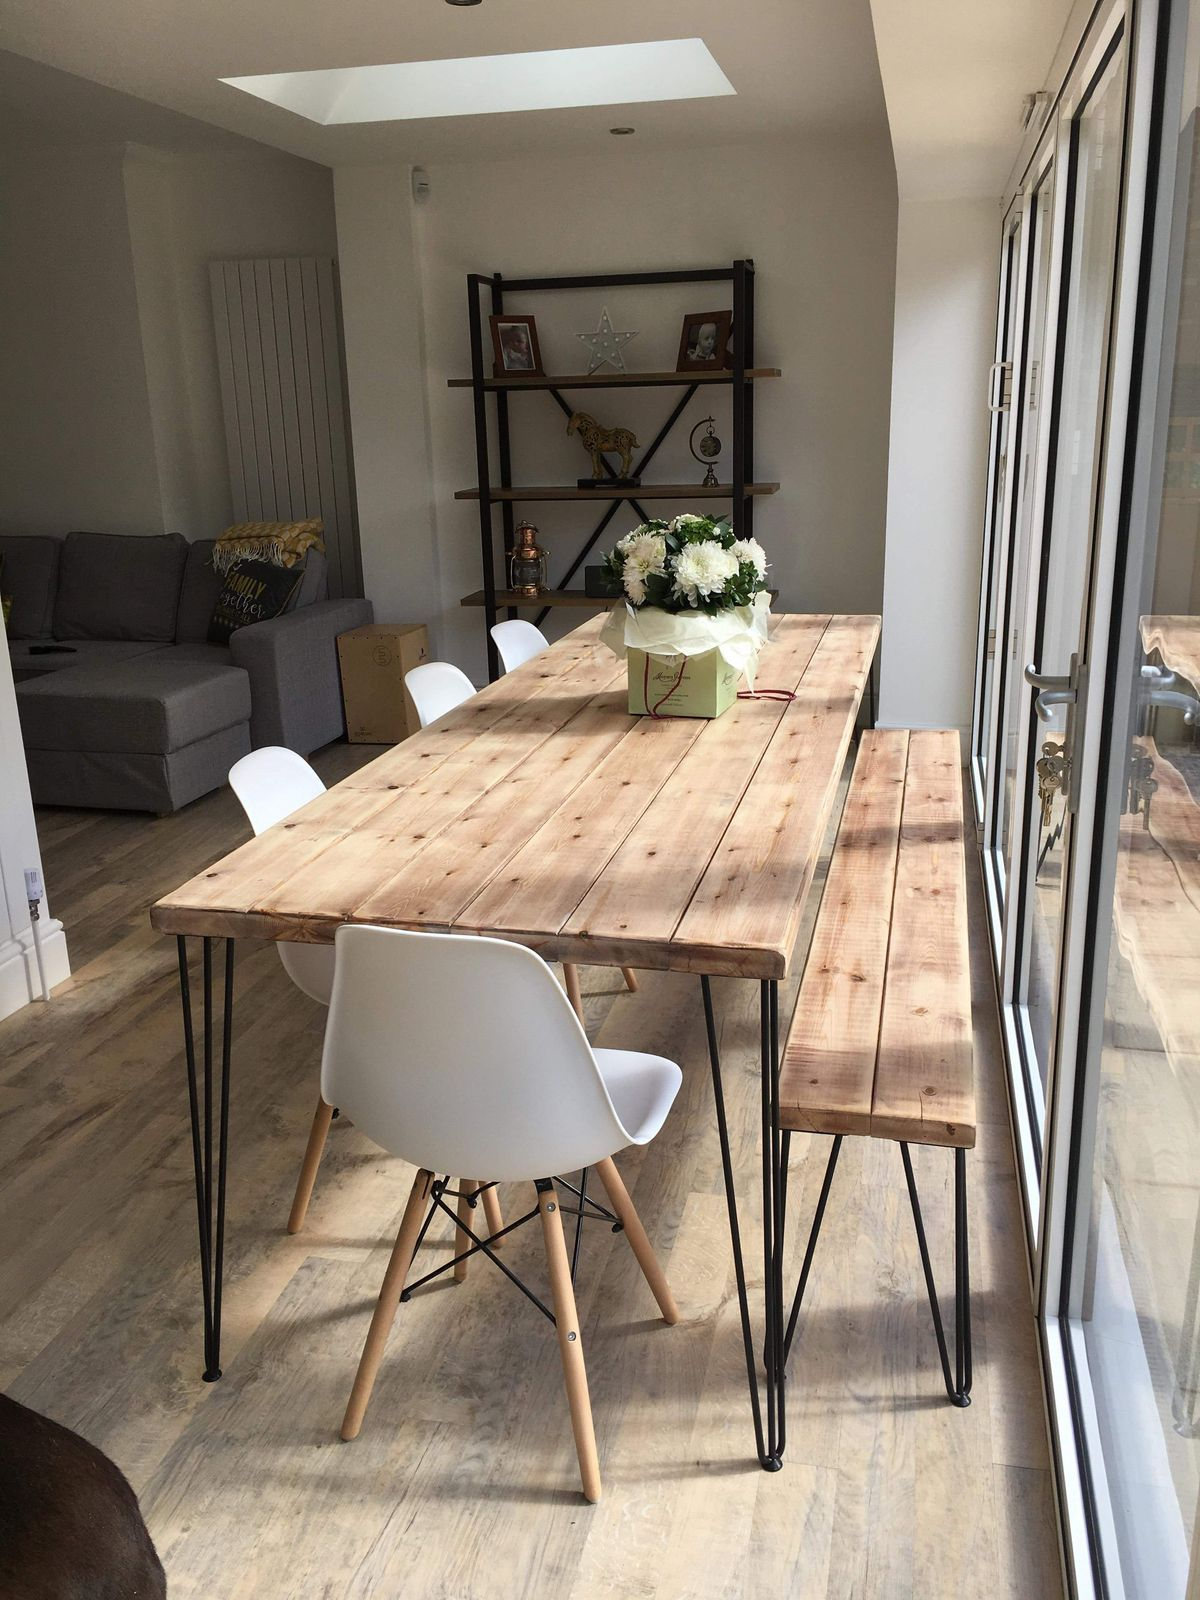 Pin By Cara On Diy Ideas Dining Room Industrial Hairpin Dining Table Diy Dining Room Table